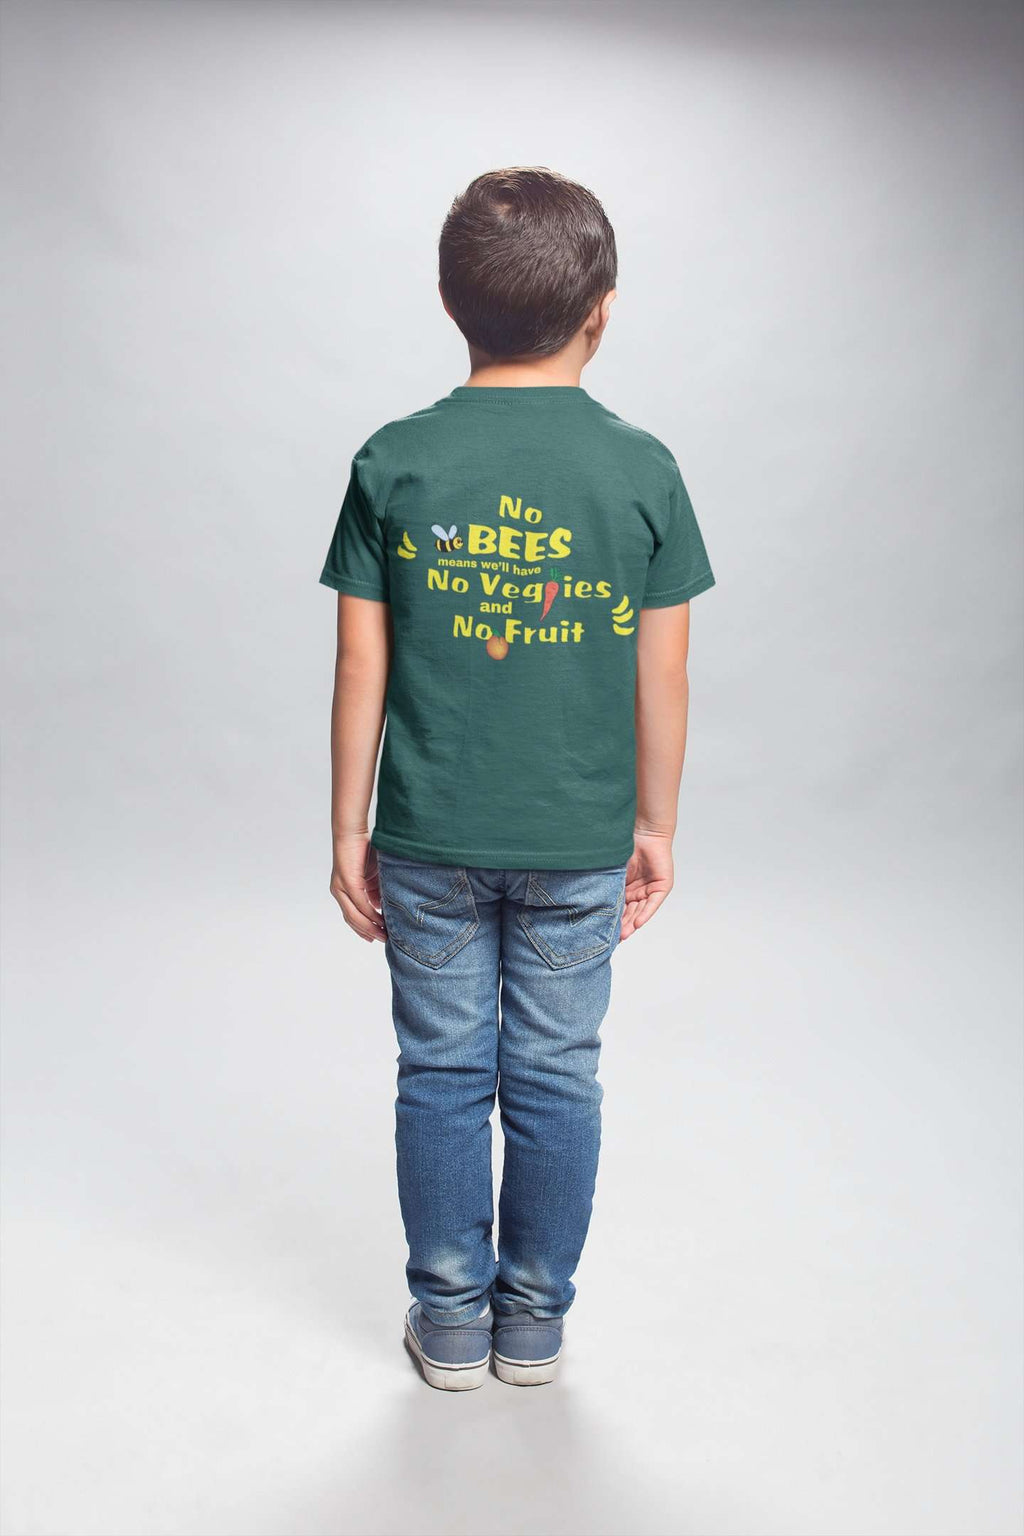 Save Our Bees Kids Tee - Rising Vegans